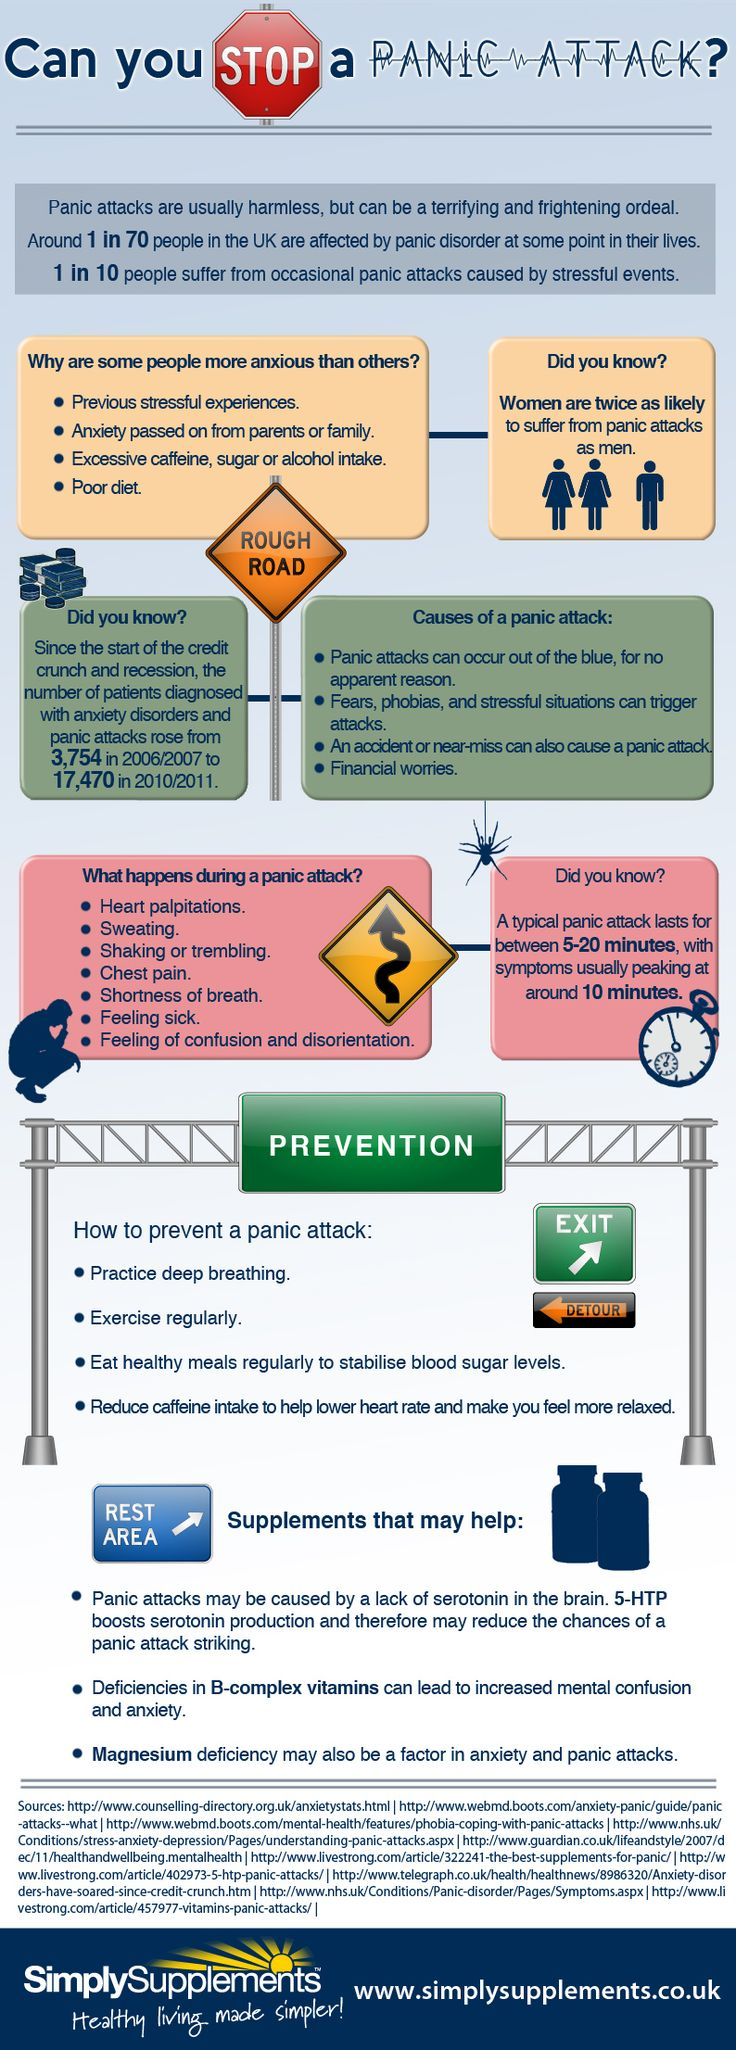 Can you stop a panic attack?  Take a look at our infographic and follow the road to a panic-free lifestyle!